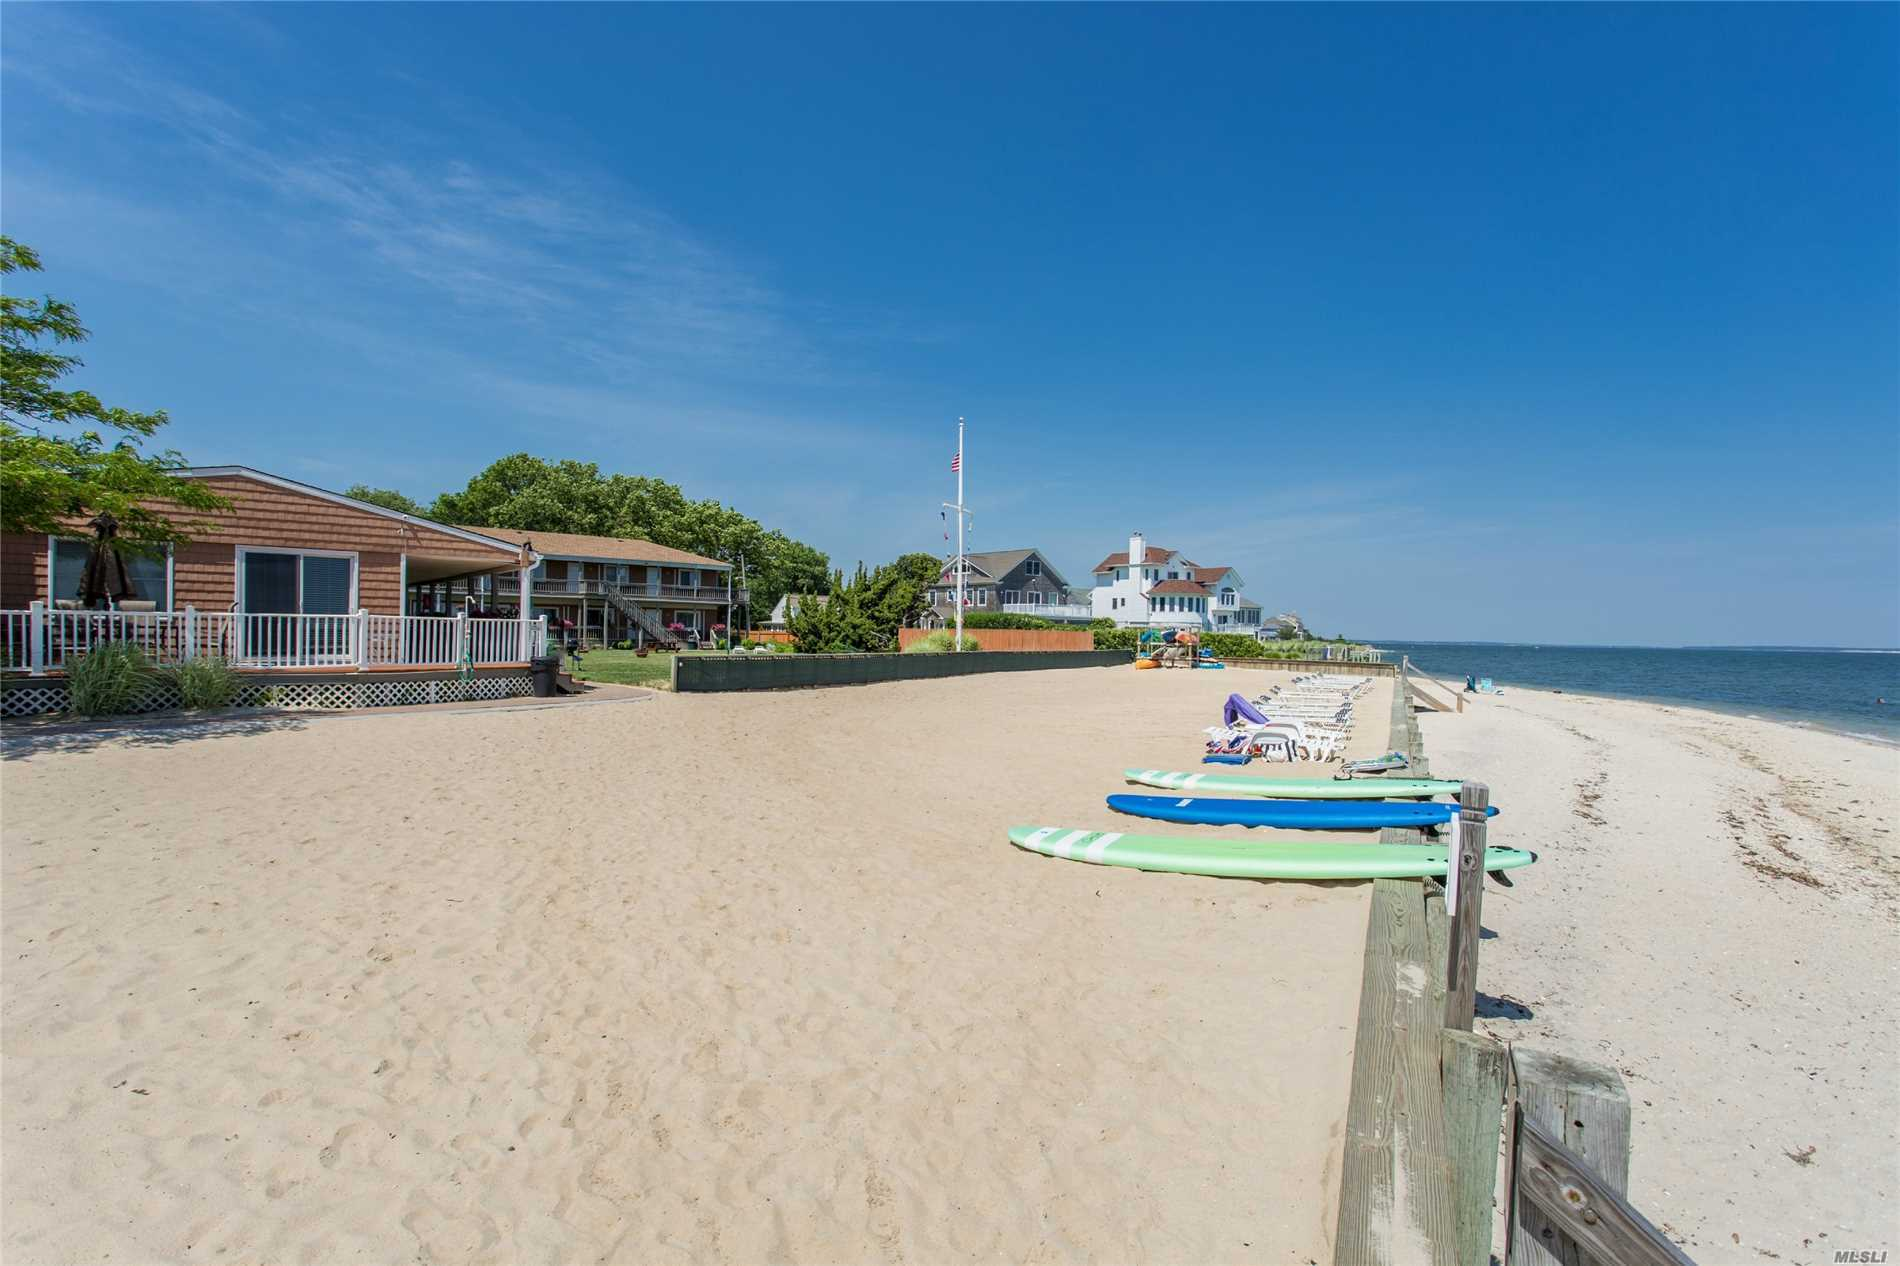 Fully Furnished One Bedroom Unit On The Beautiful Peconic Bay. 365 Feet Of Bulkheaded Bay Front With Sandy Beach. This Little Piece Of Paradise On The North Fork Can Be Rented Out On A Daily, Weekly Or One Month Basis. Great Spot For Vacation. Resort Style Living On The North Fork